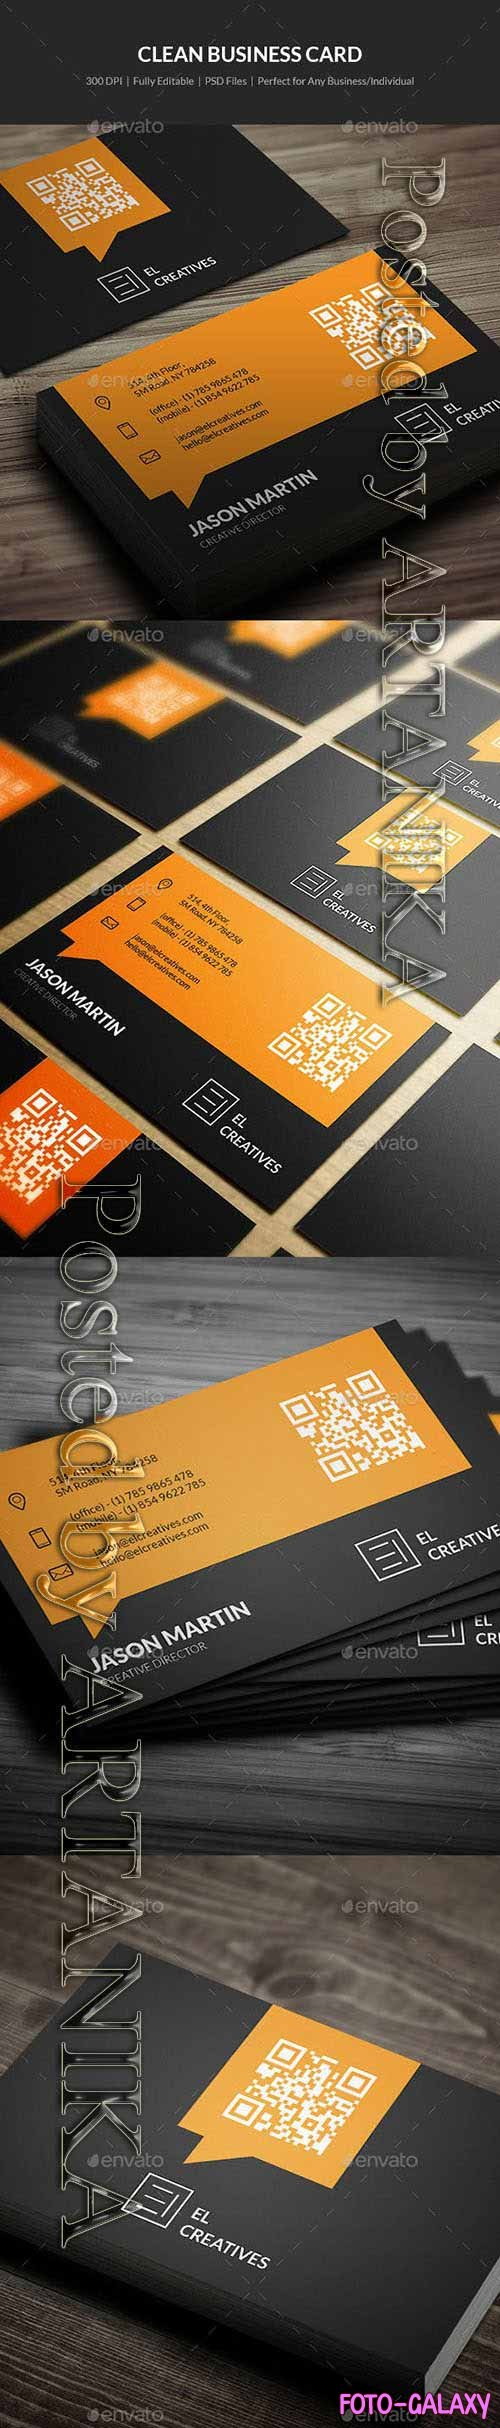 Graphicriver - Clean Business Card - 17 21324654